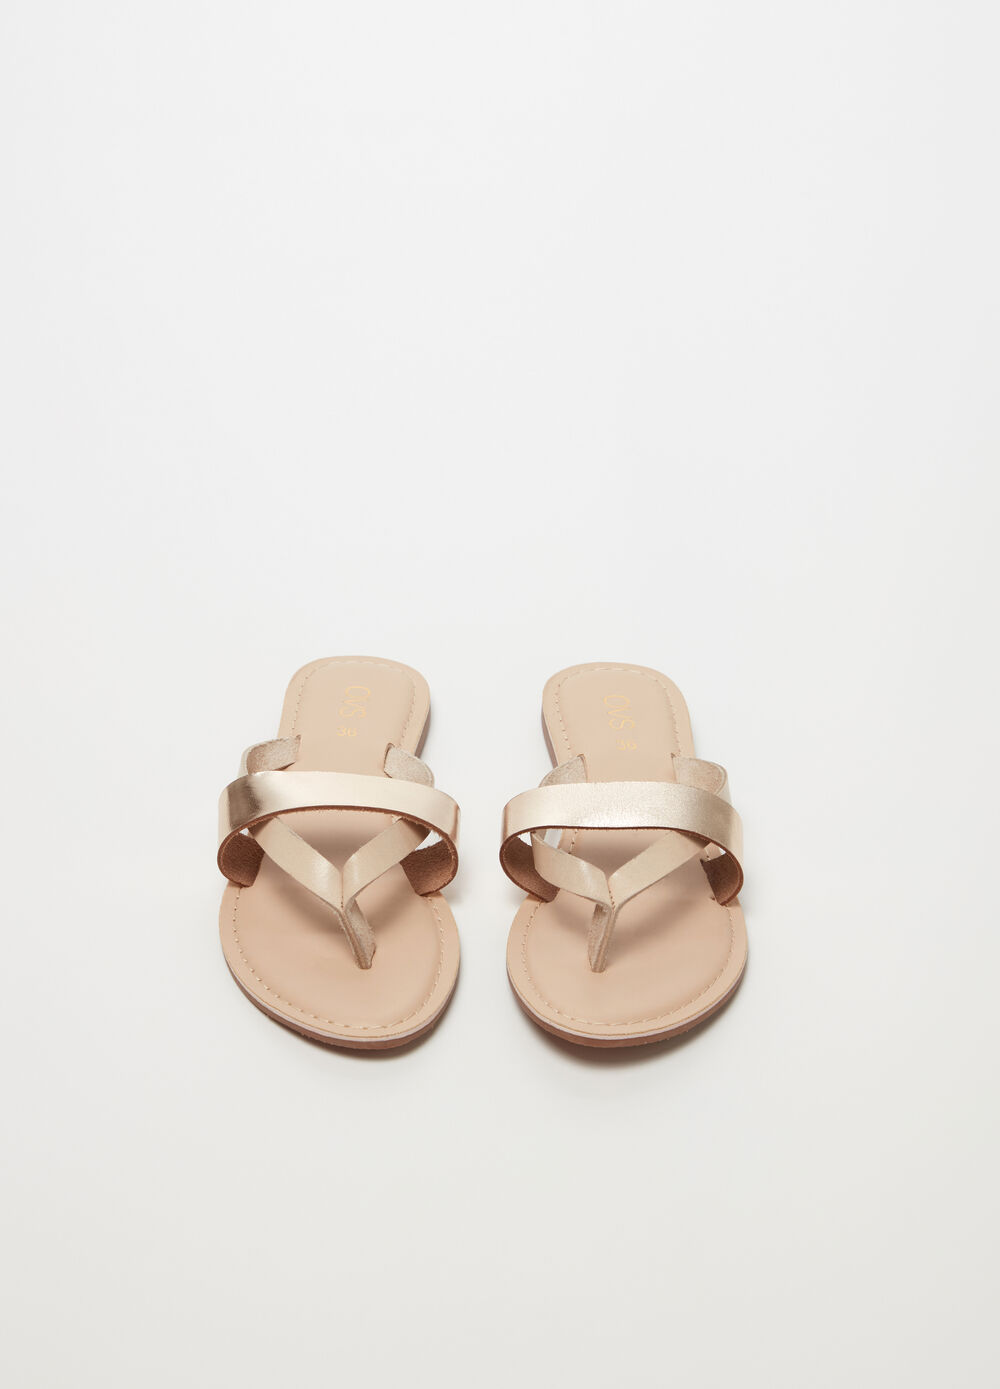 Leather thong sandal with metallic band